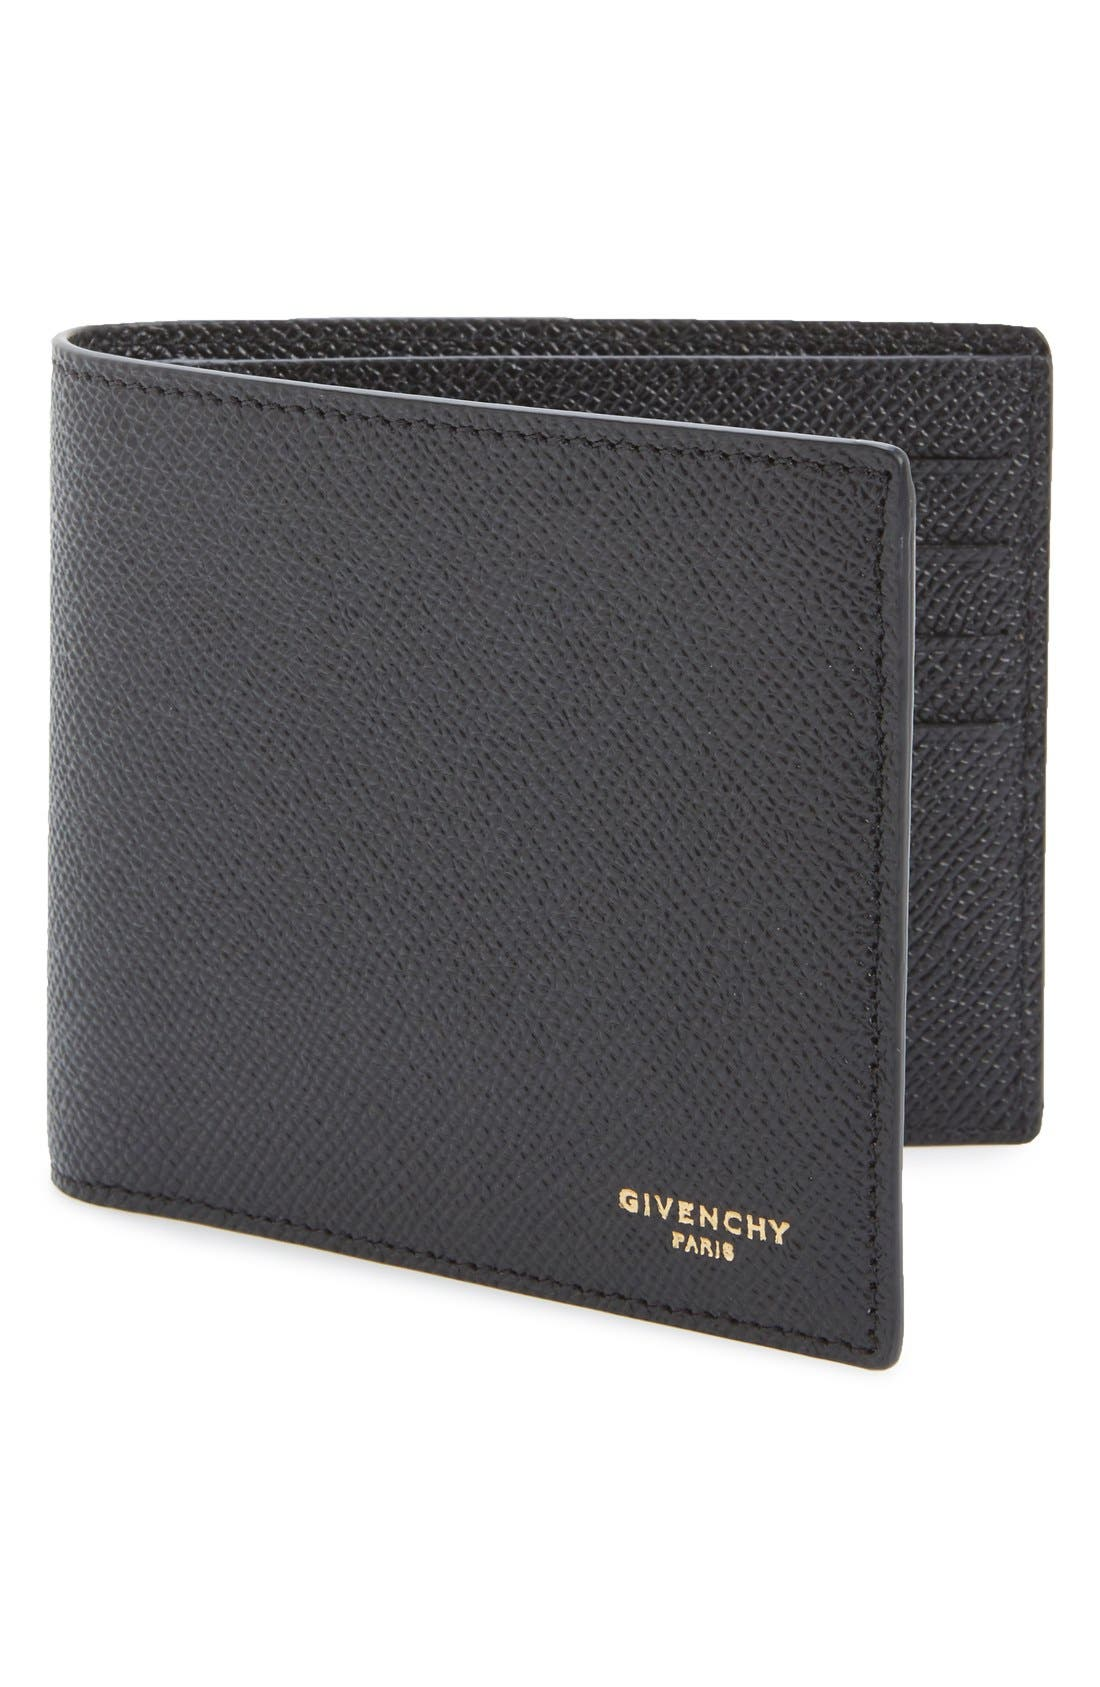 Calfskin Leather Bifold Wallet,                             Main thumbnail 1, color,                             BLACK